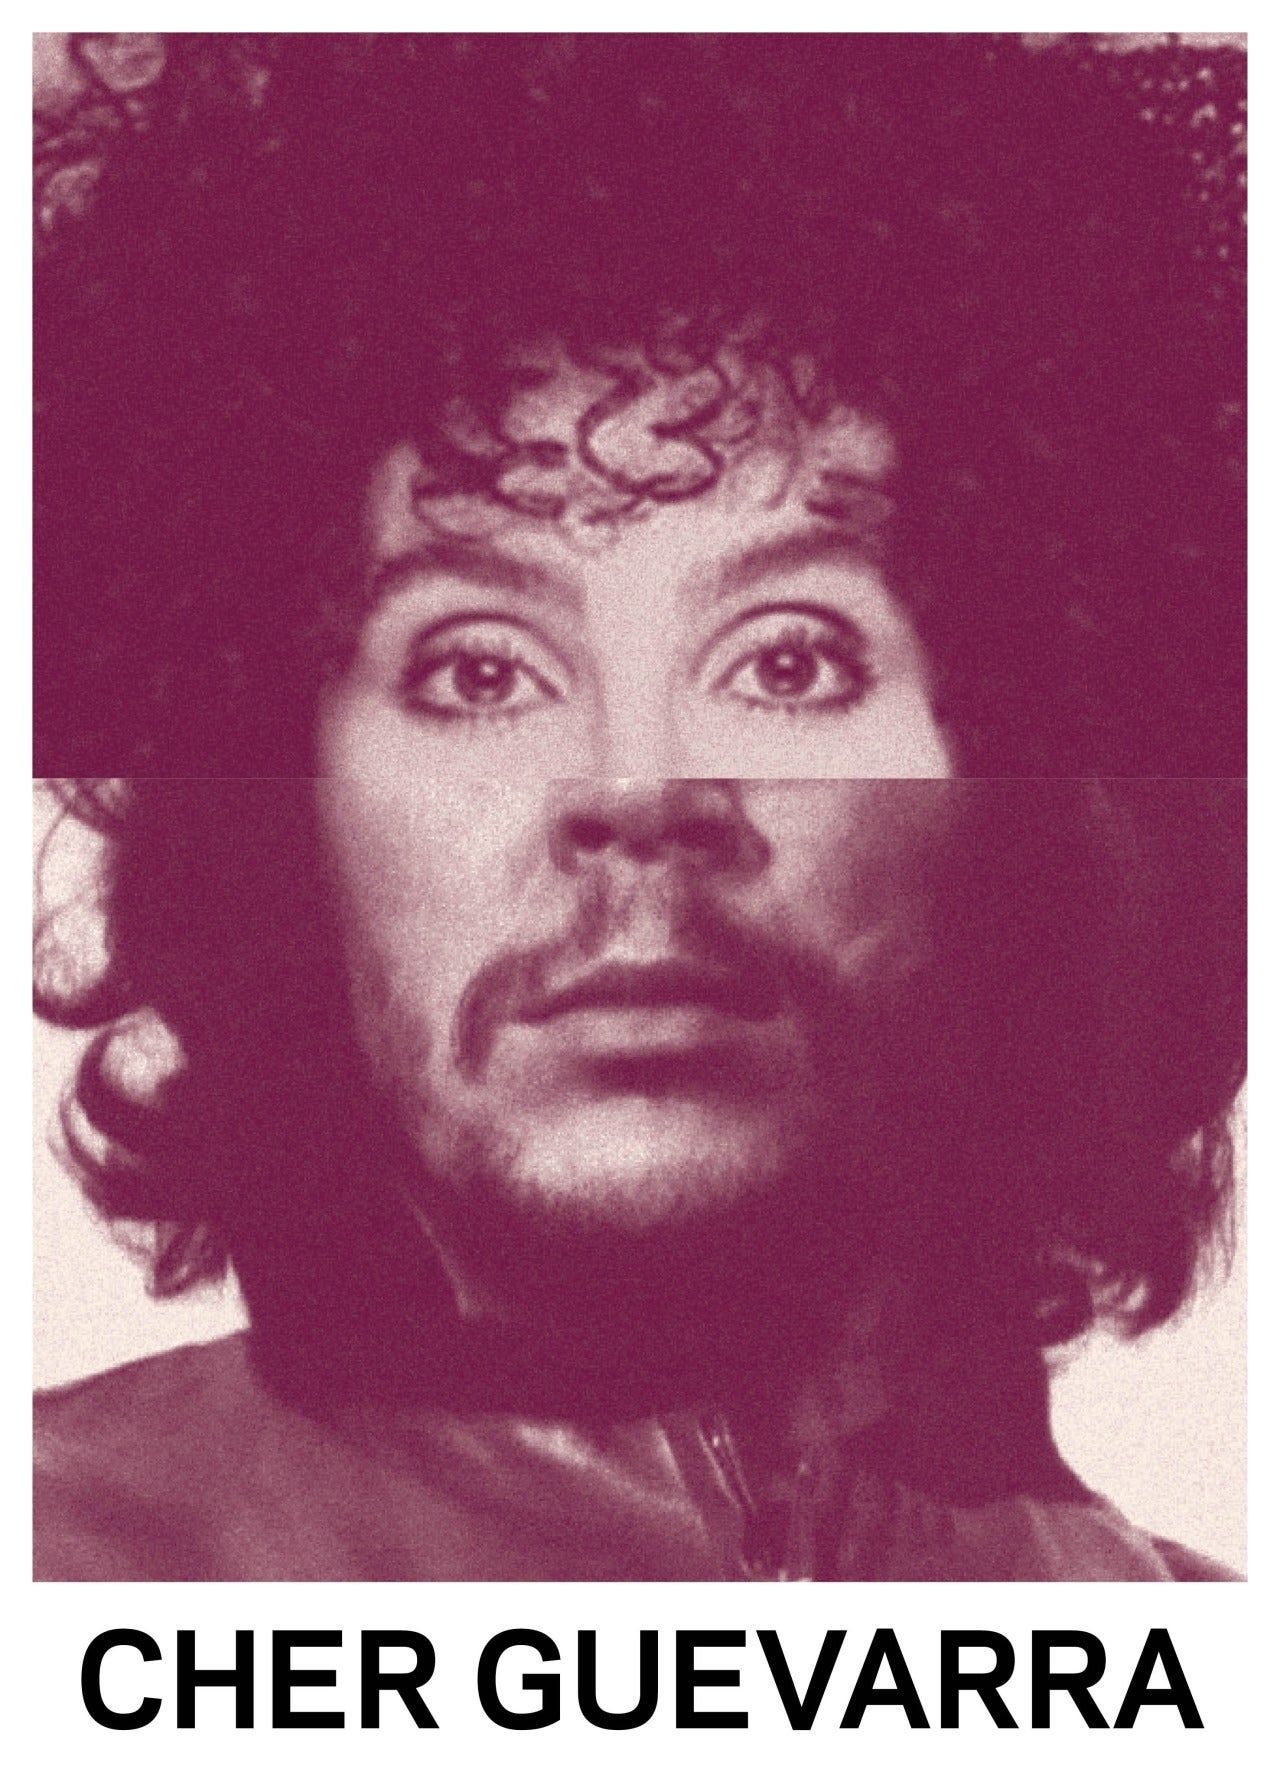 Names and faces of celebrities combined in a series of hilarious mashups